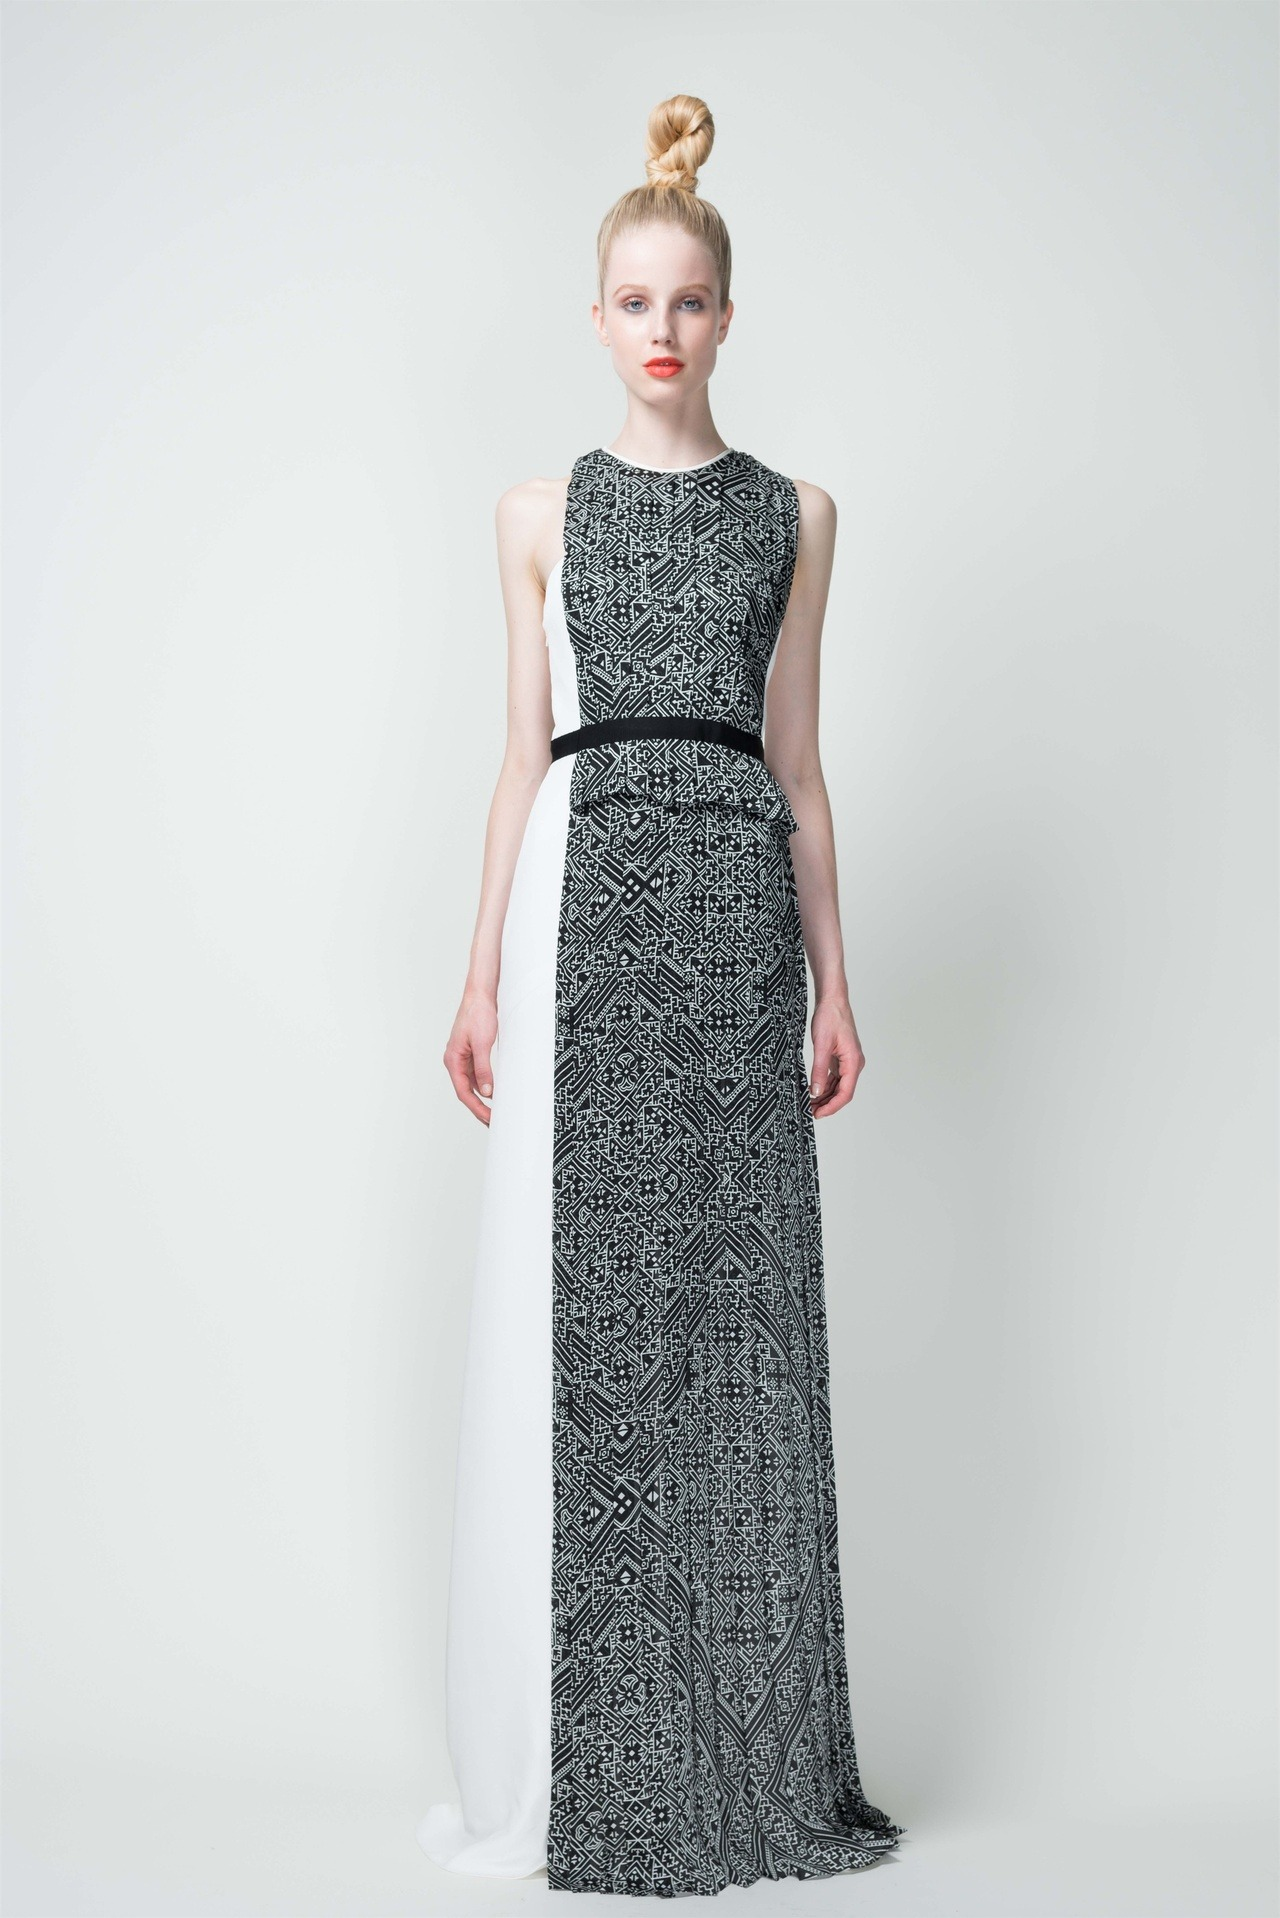 Quirine Engel for Bibhu Mohapatra, resort 2013